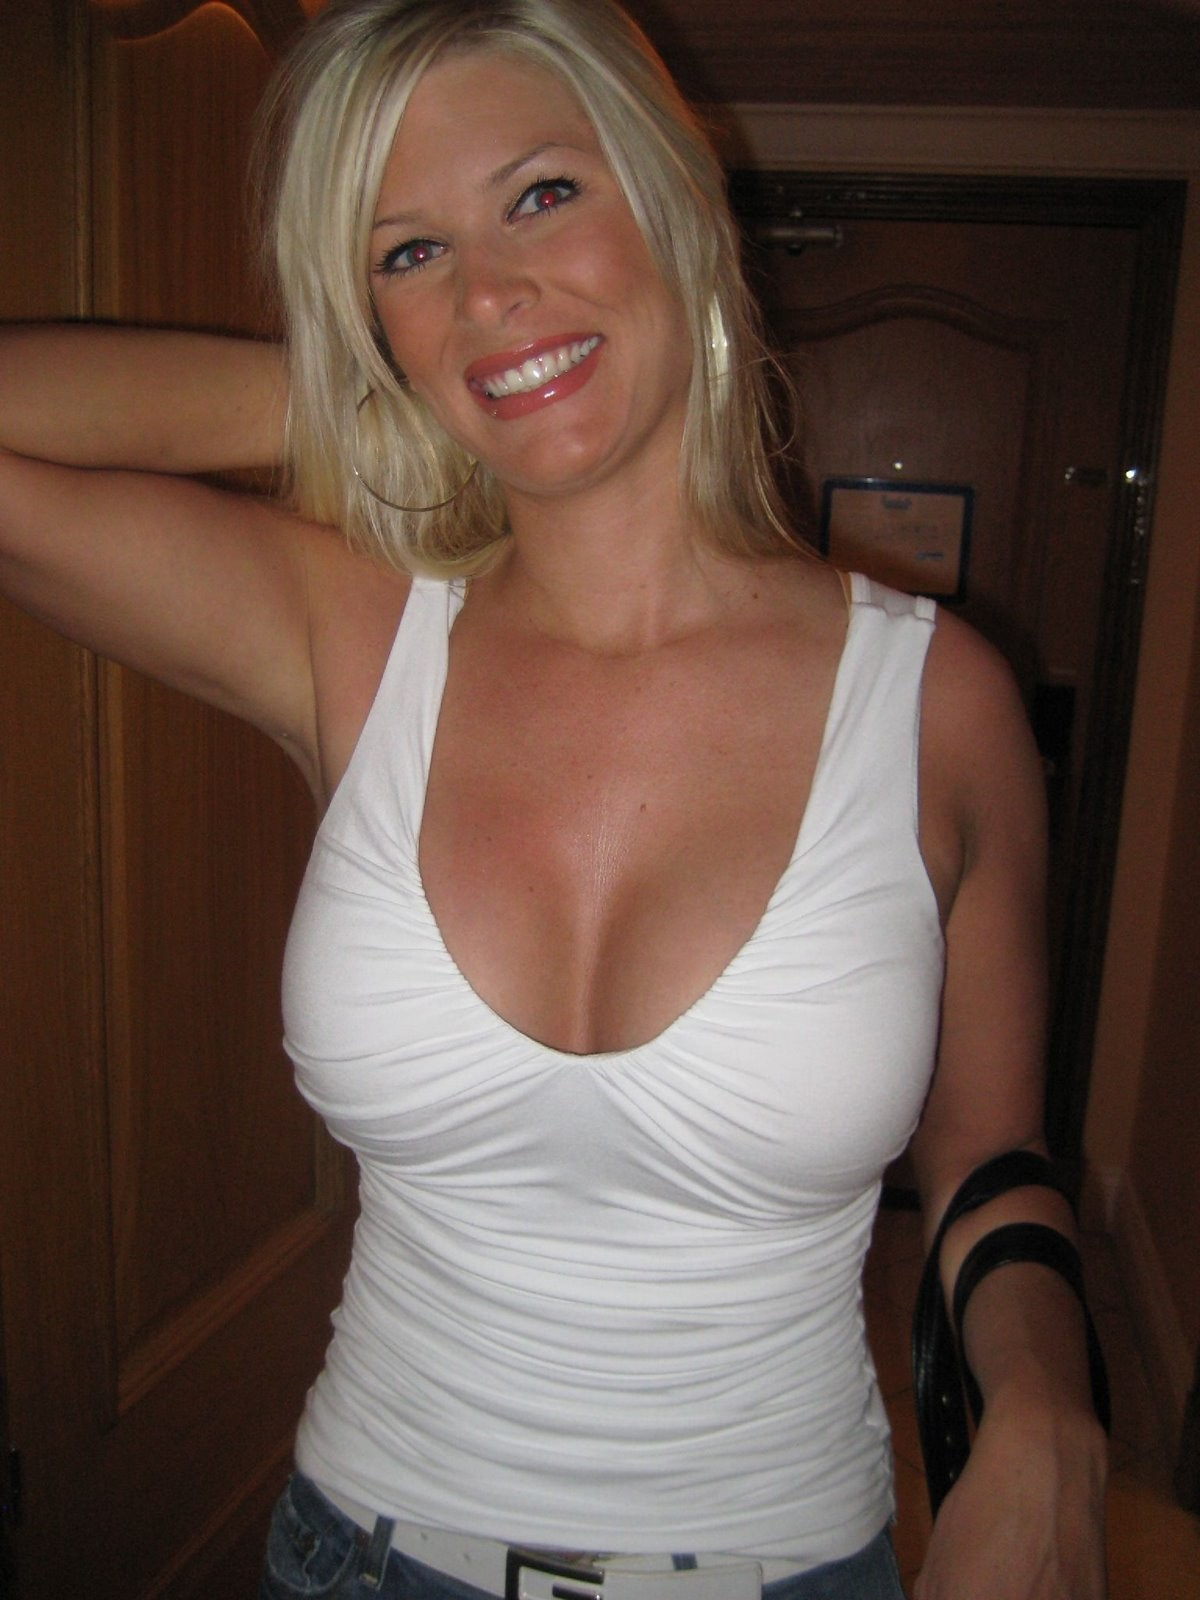 albuquerque dating free hot in single site